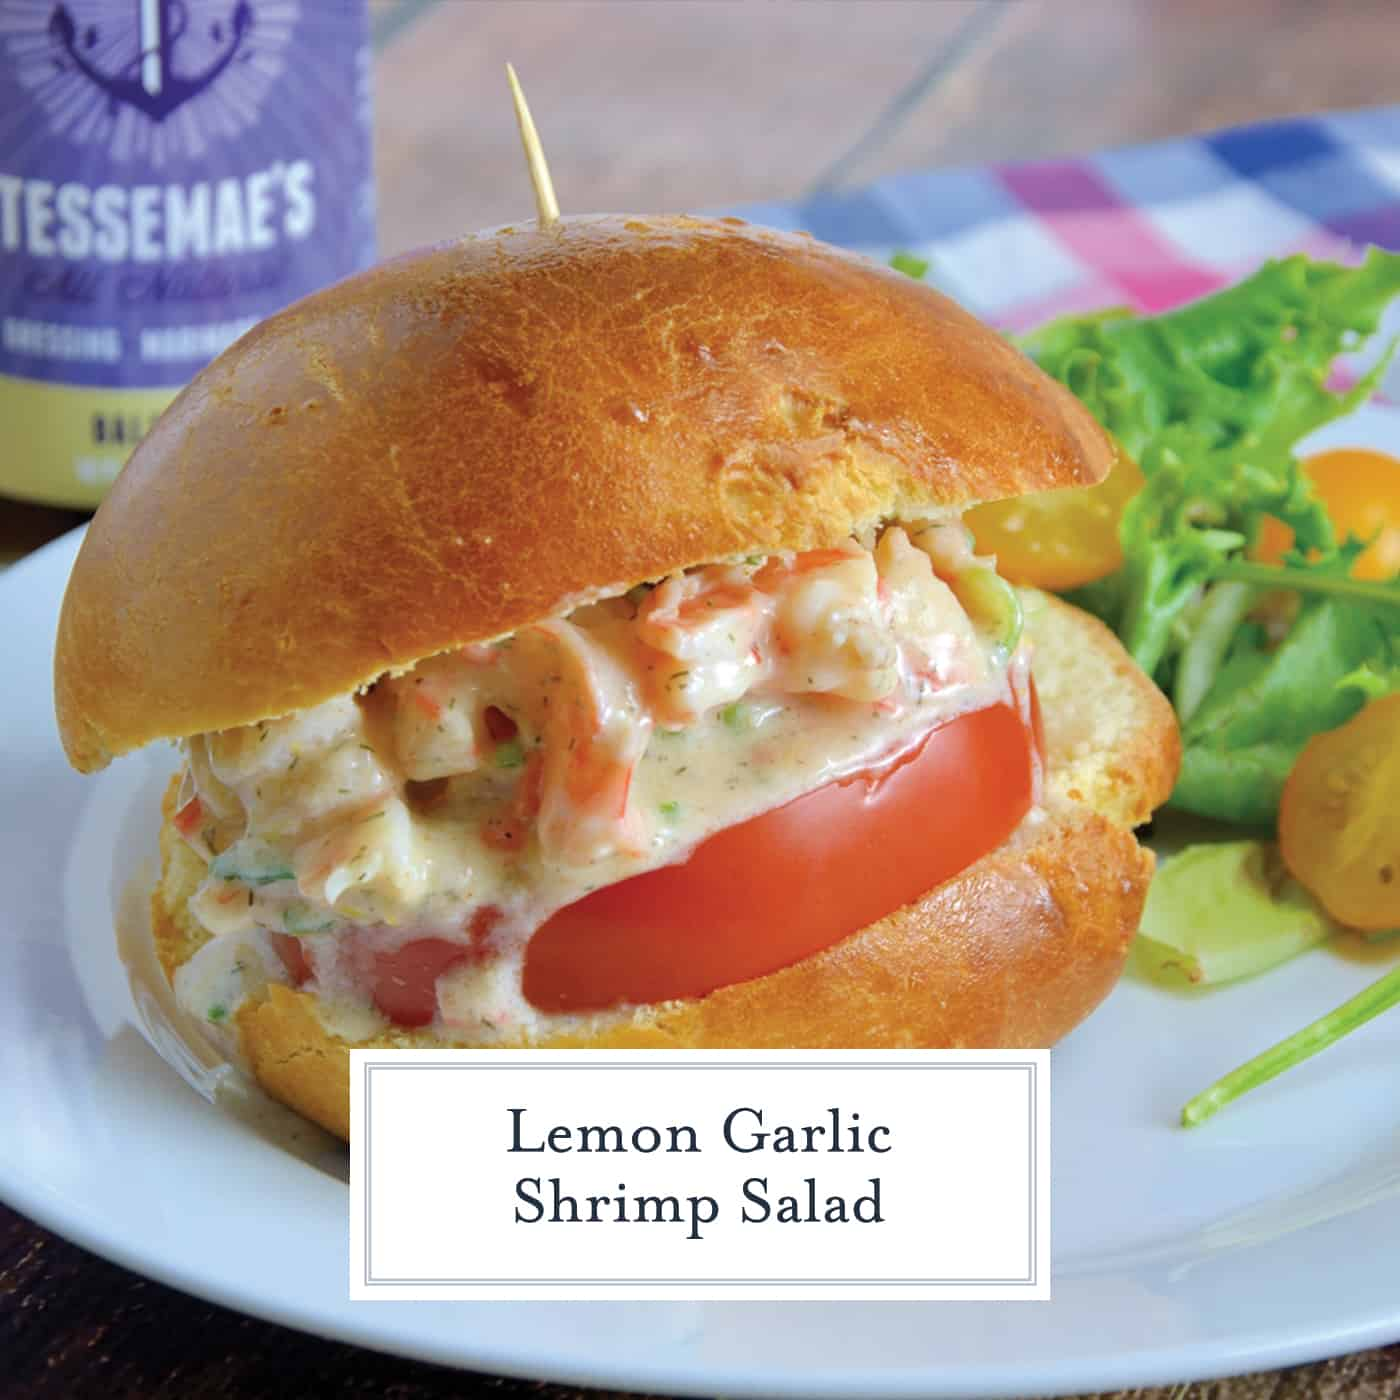 Lemon Garlic Shrimp Salad is a healthier version of classic comfort food using plain yogurt, celery, carrots, chives, dill and spices on a buttery brioche roll. #shrimpsaladrecipe www.savoryexperiments.com